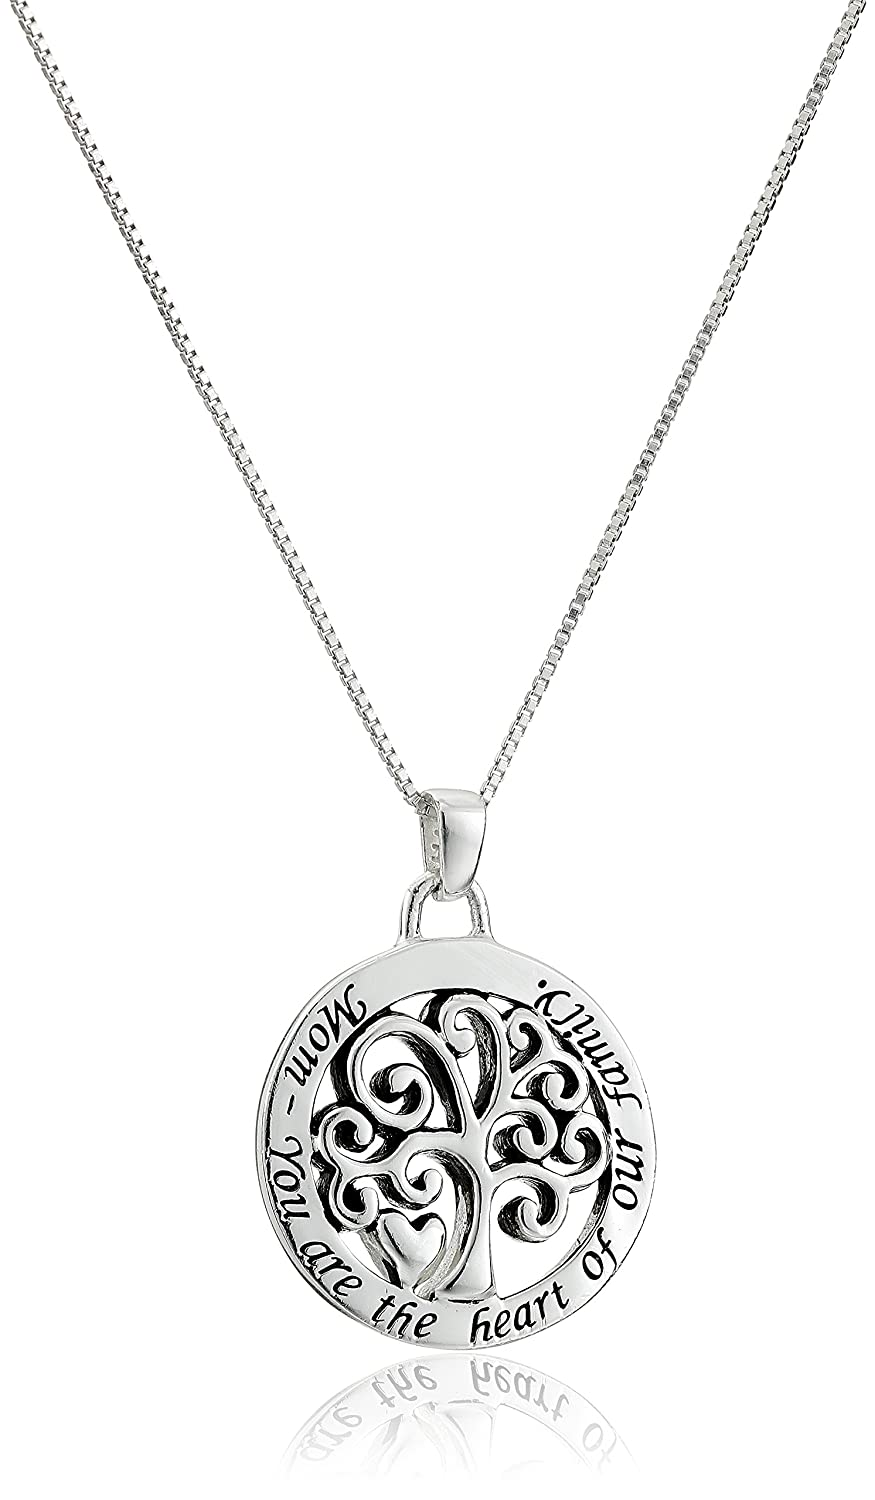 Sterling silver mom you are the heart of our family reversible family tree pendant necklace 18 amazon sterling silver mom you are the heart of our family reversible family tree pendant necklace 18 necklaces for mom jewelry aloadofball Images